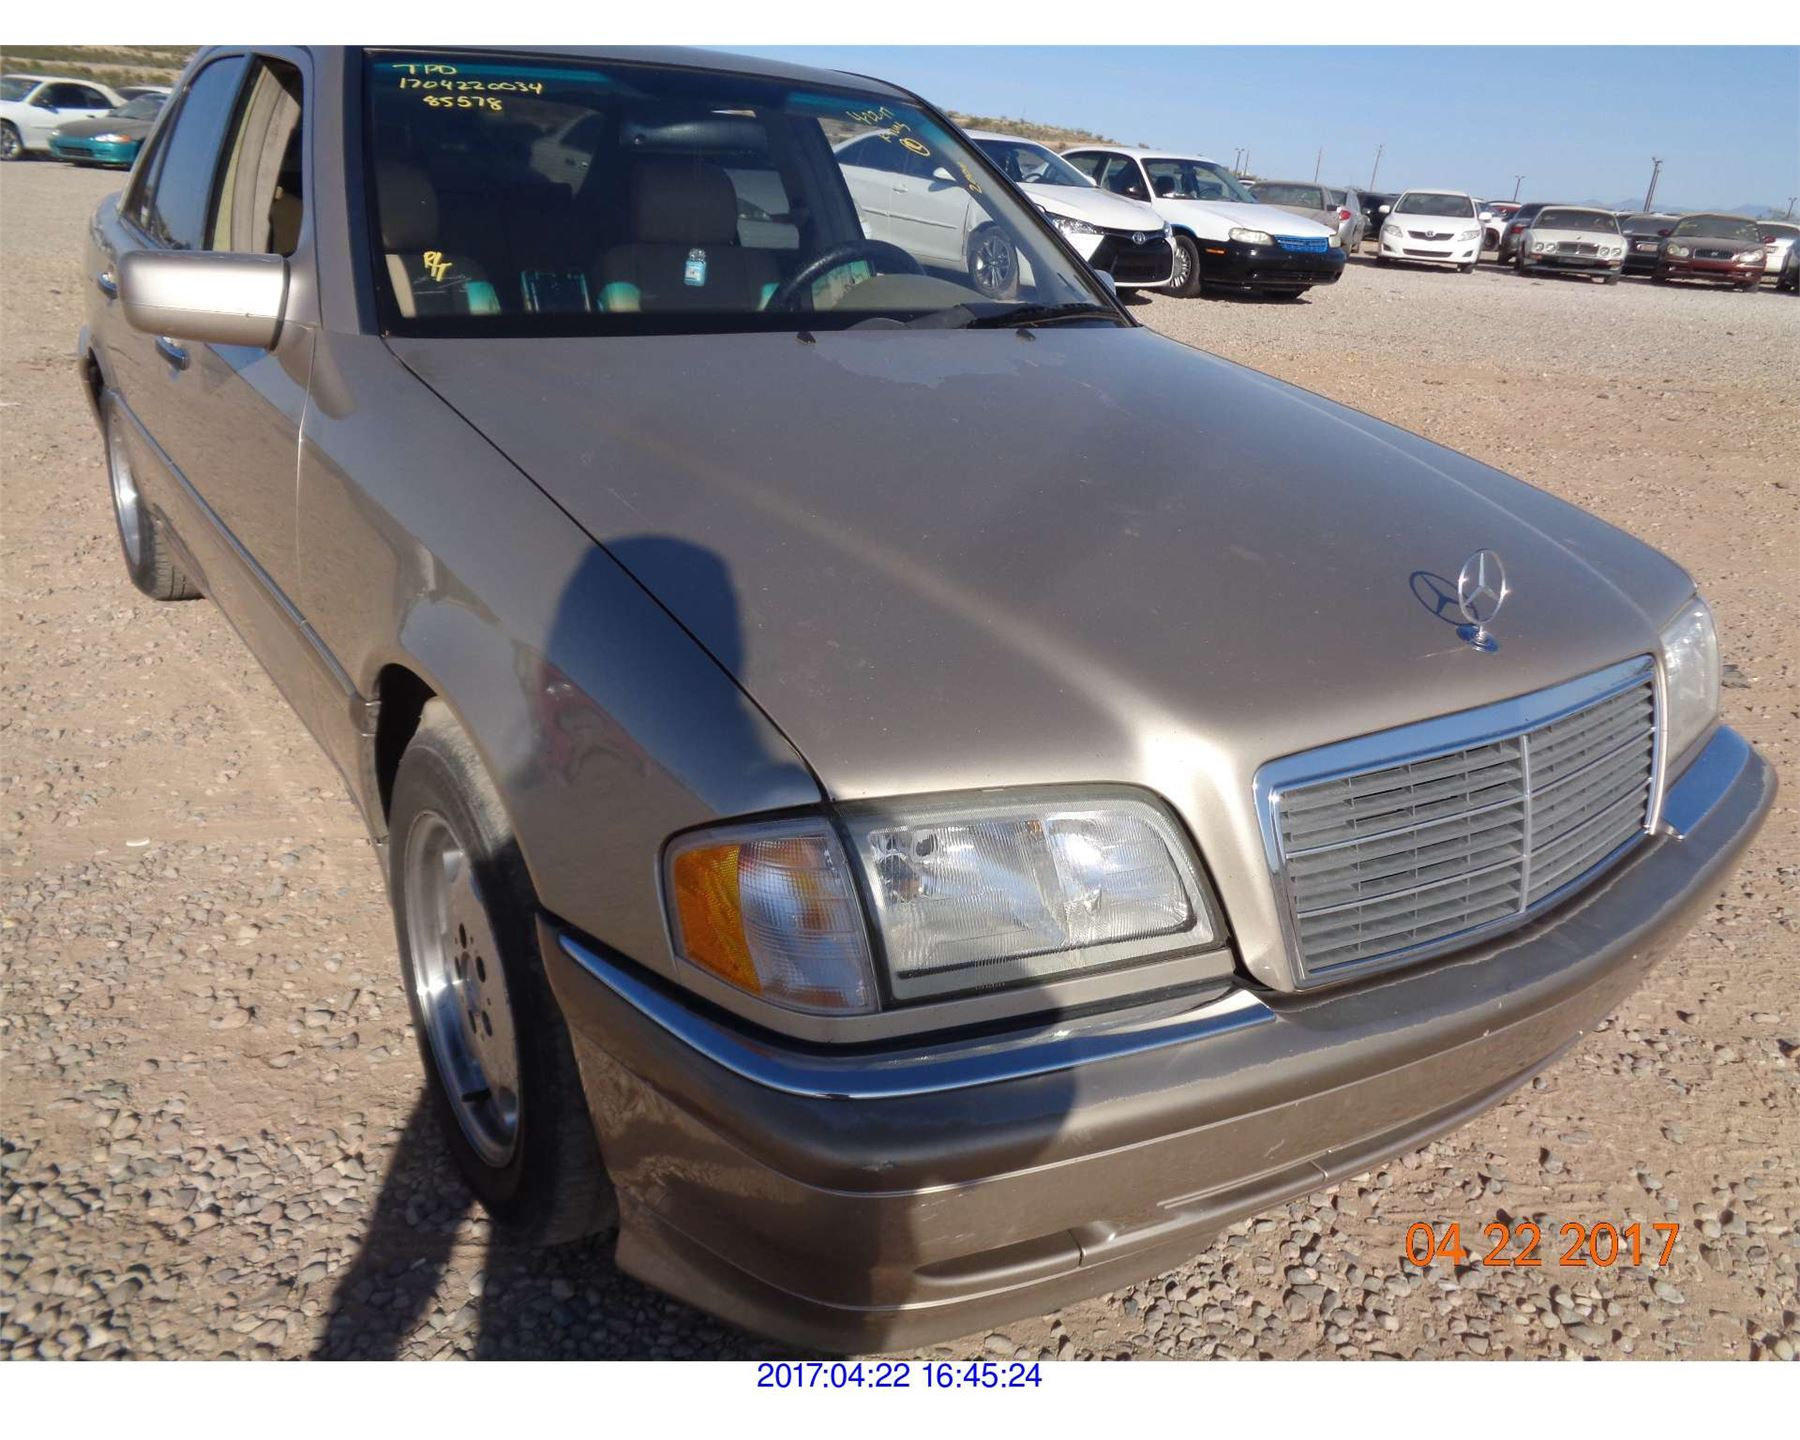 2000 Mercedes Benz C230 Salvage Title Rod Robertson